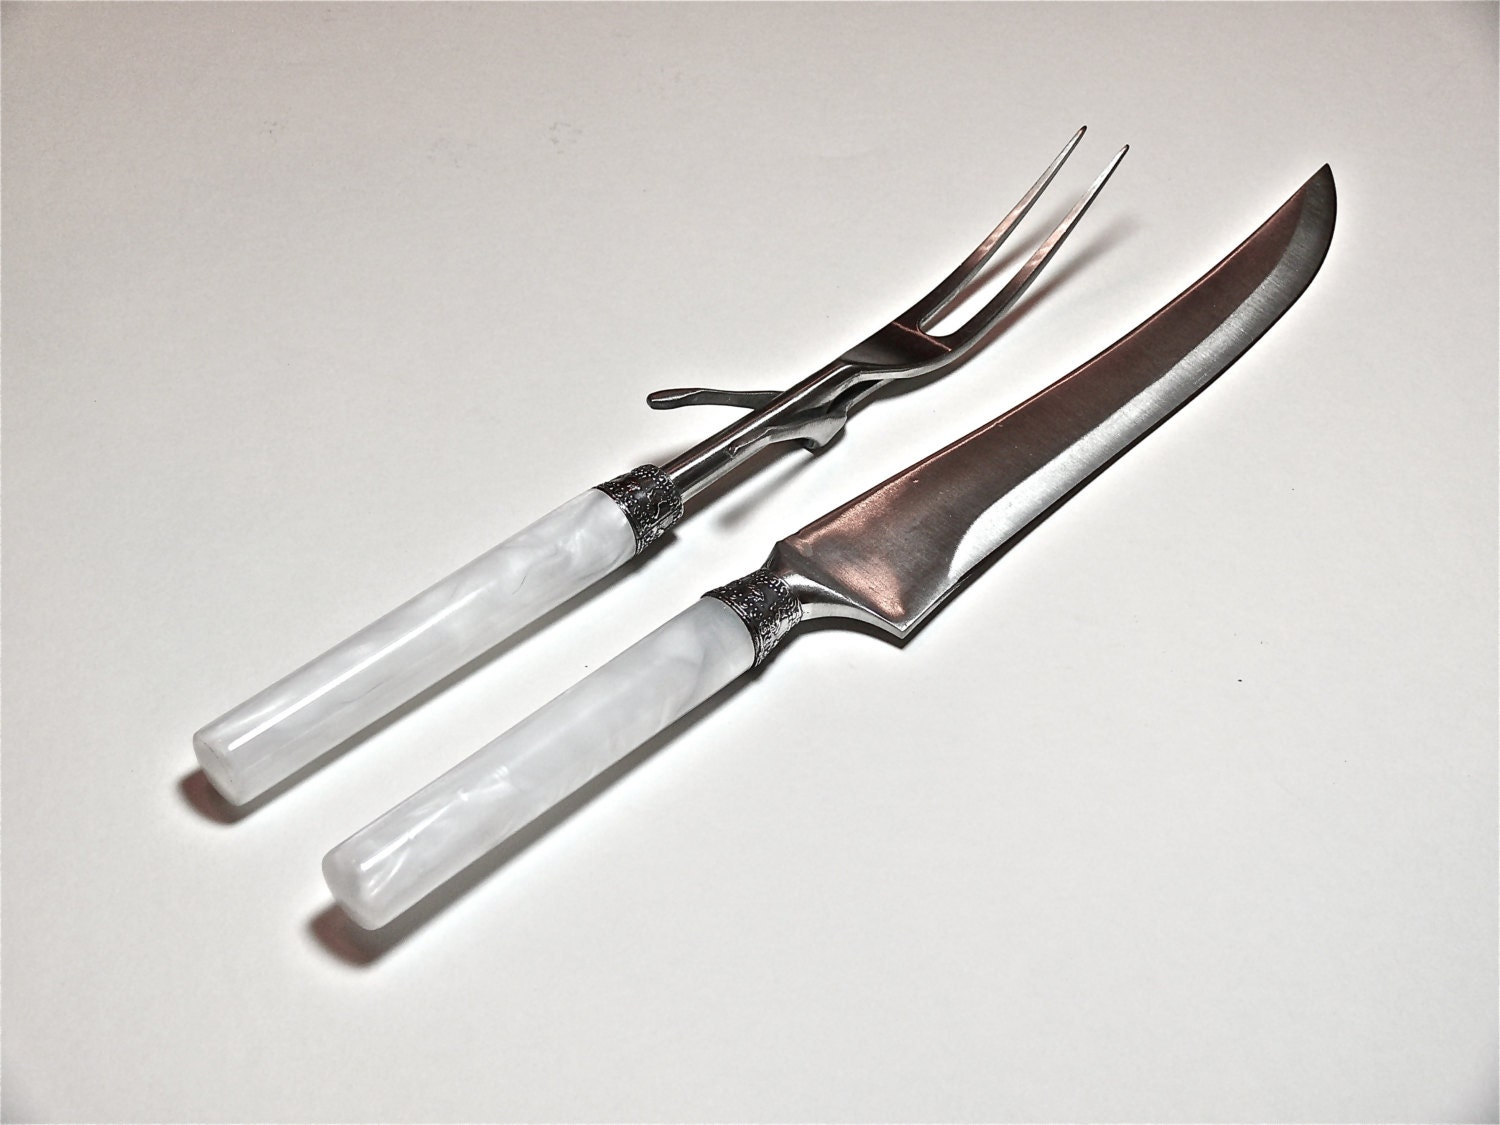 white handmade kitchen cutlery knife and fork by